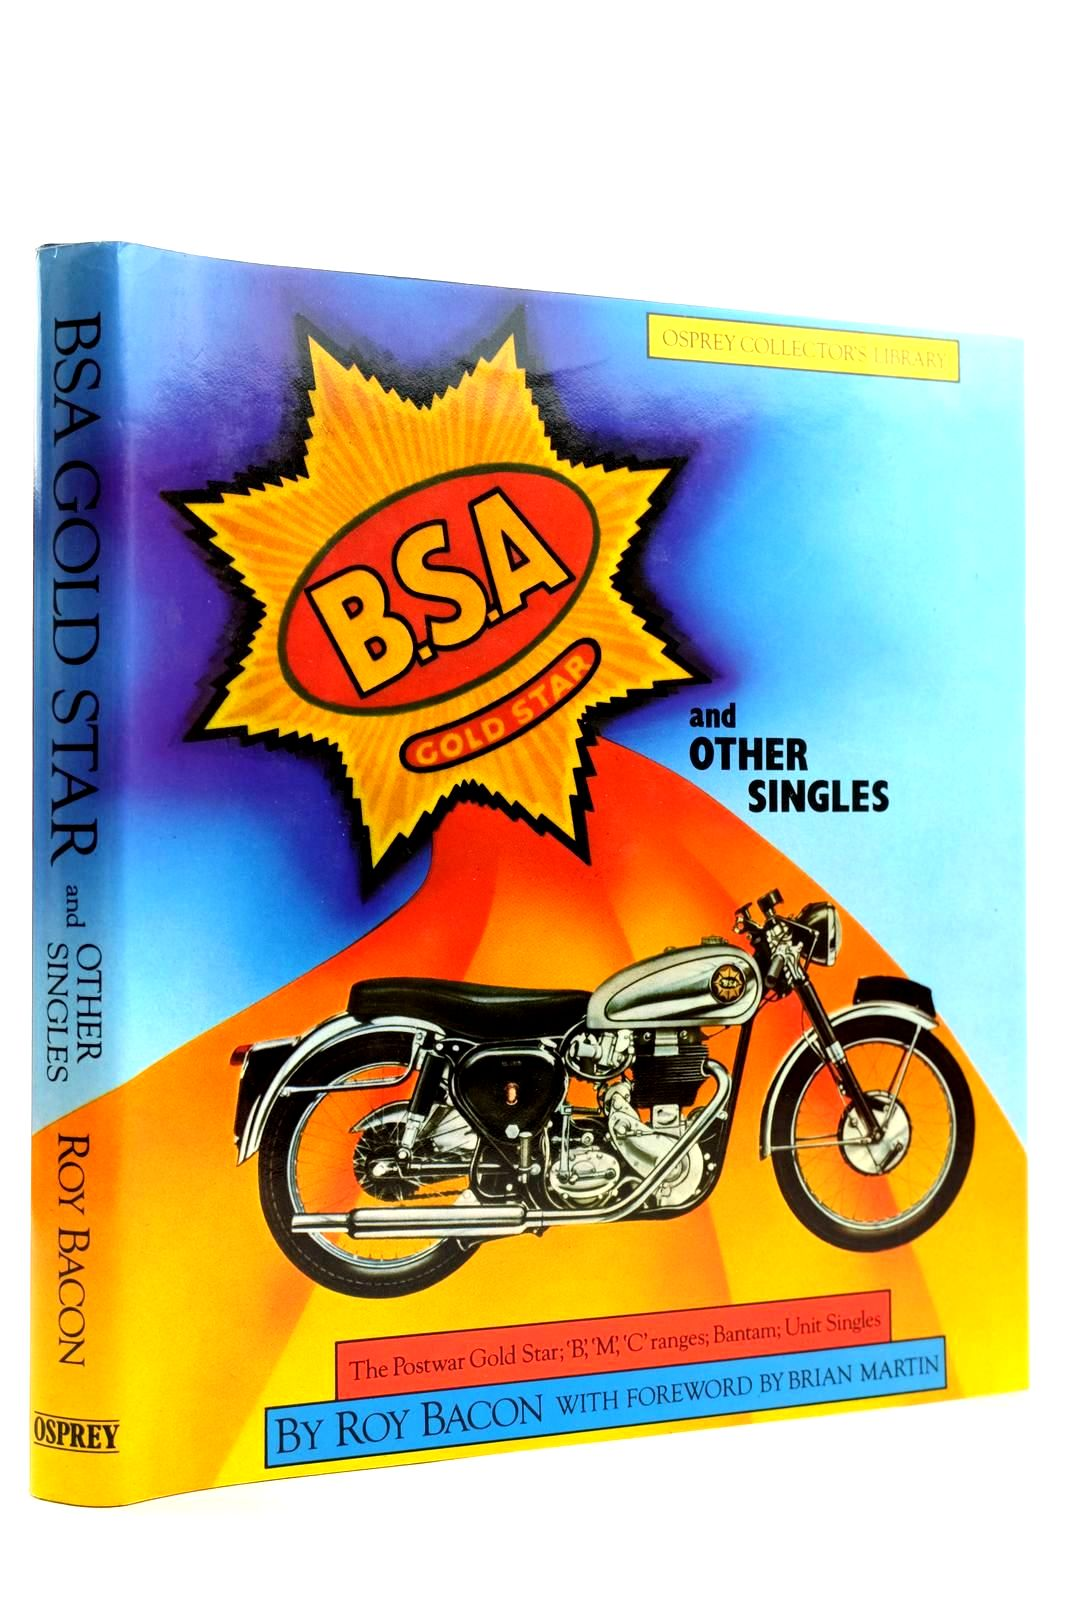 Photo of BSA GOLD STAR AND OTHER SINGLES (OSPREY COLLECTOR'S LIBRARY) written by Bacon, Roy published by Osprey Publishing (STOCK CODE: 2132002)  for sale by Stella & Rose's Books